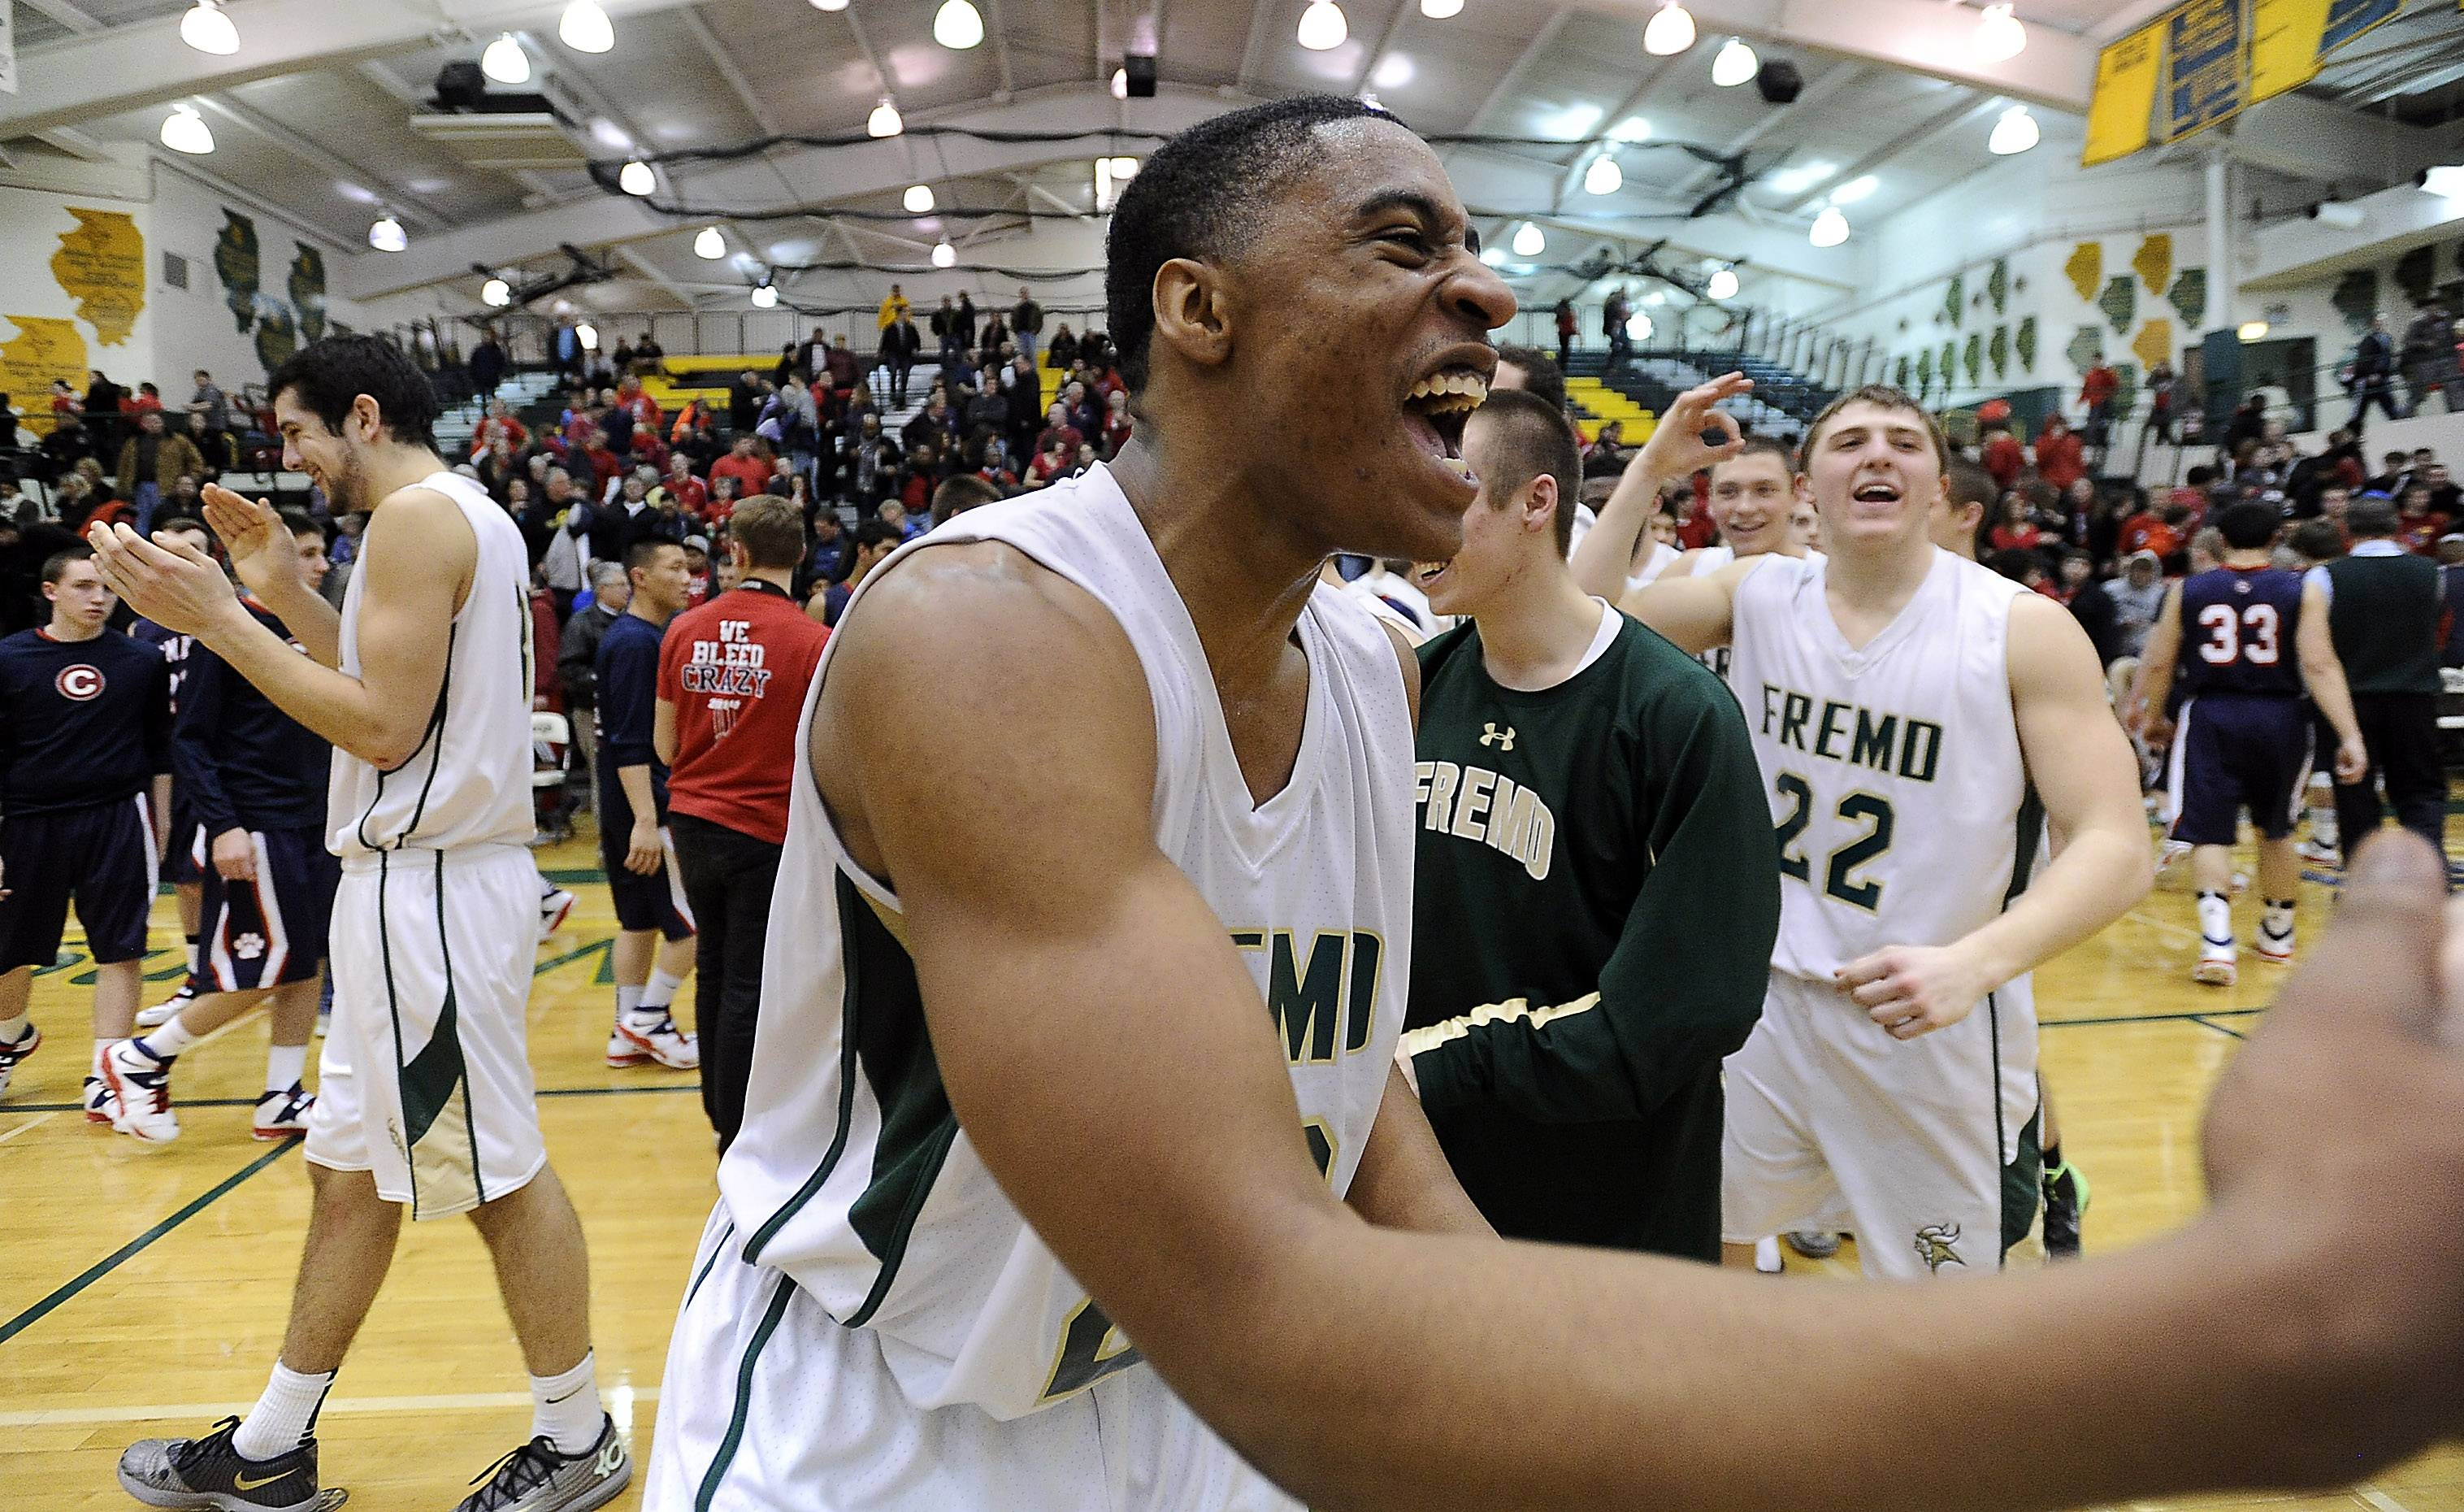 Fremd's Xavier Williams (23) celebrates with his teammates after beating Conant to wrap up the MSL West title on Friday.